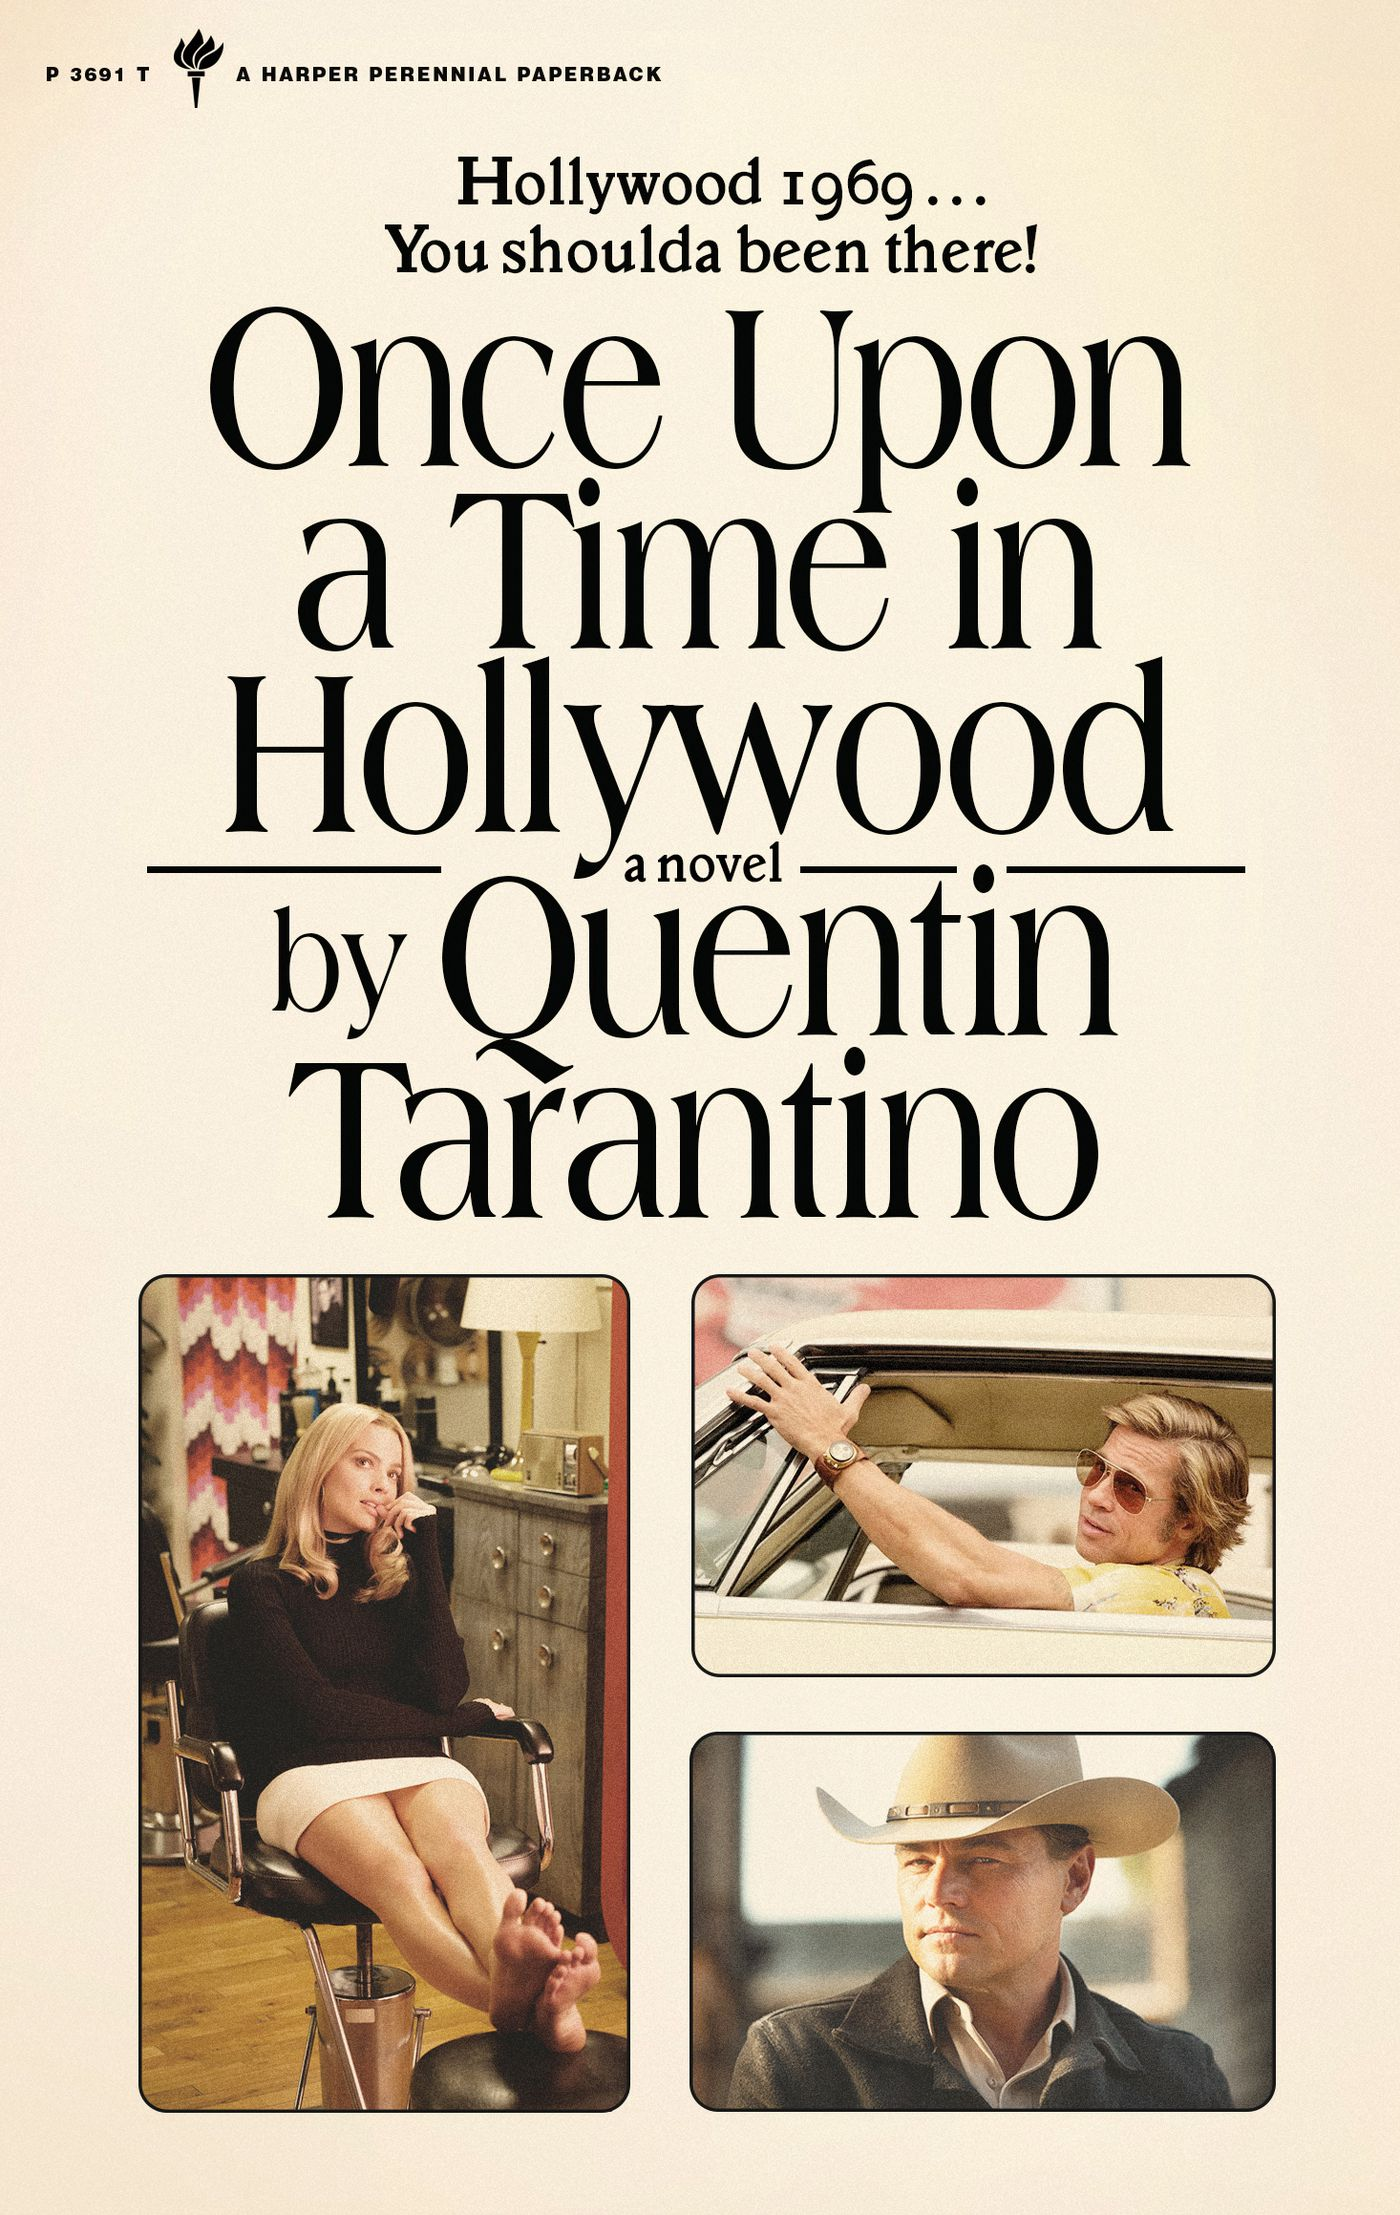 Quentin Tarantino's Once Upon a Time in Hollywood book: 8 things to know -  Polygon